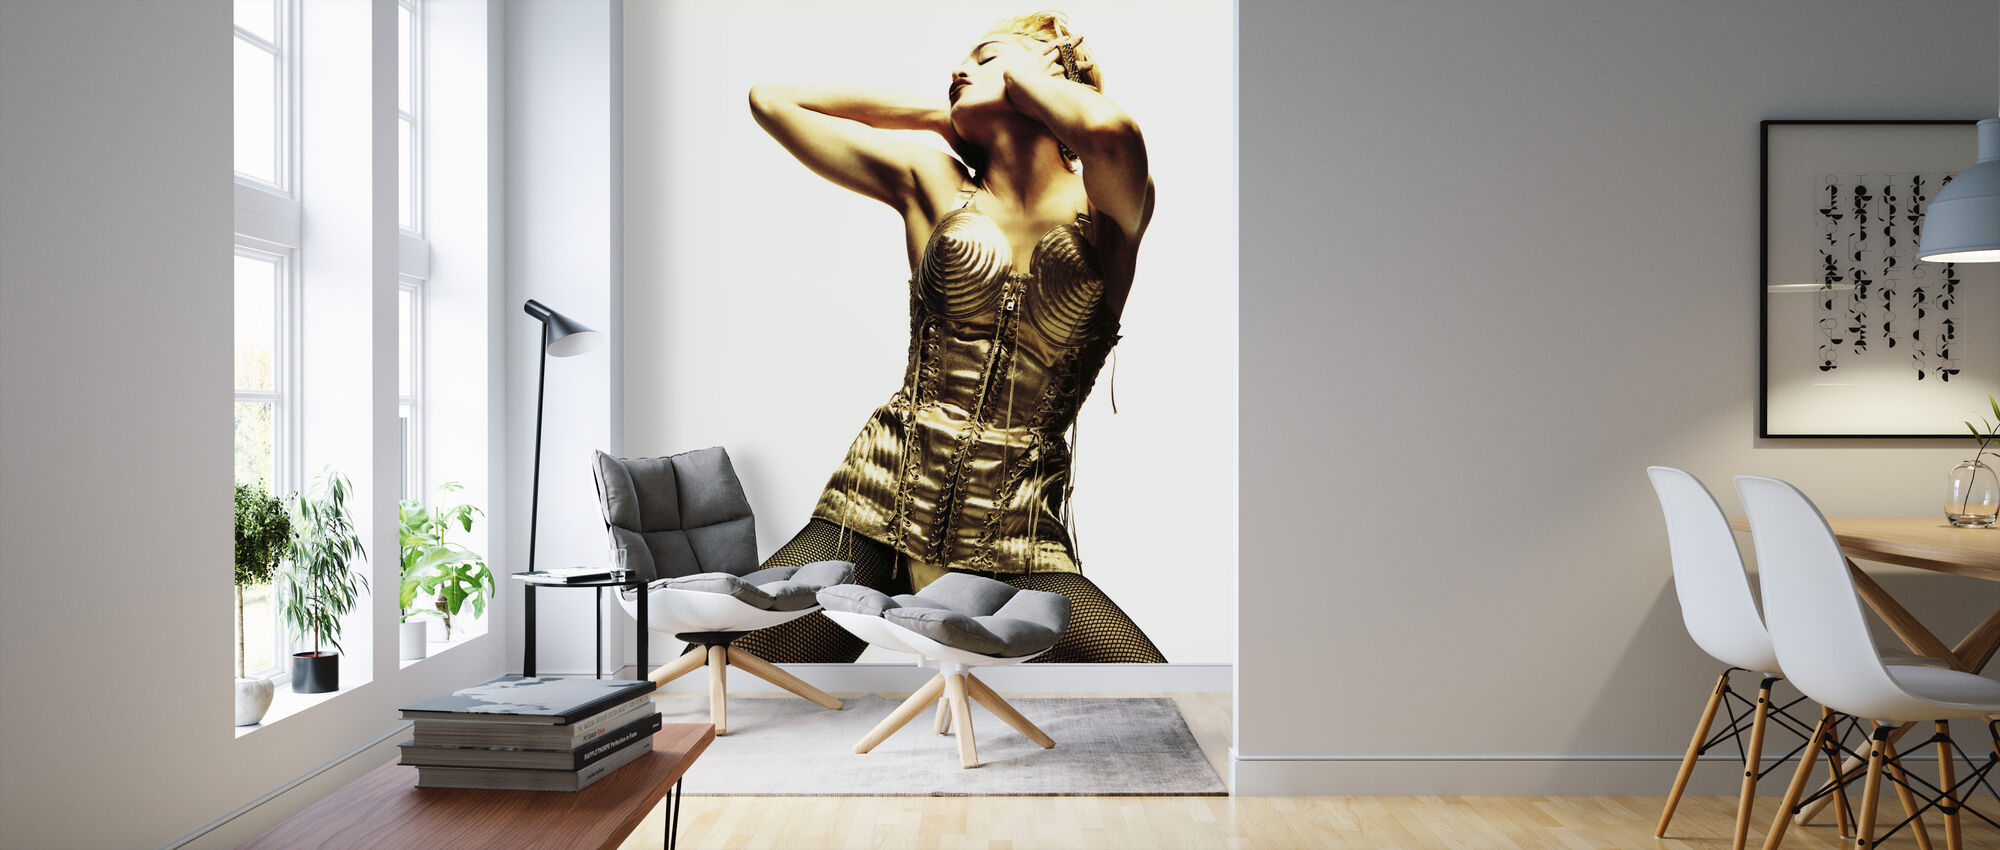 Madonna Truth or Dare - Wallpaper - Living Room